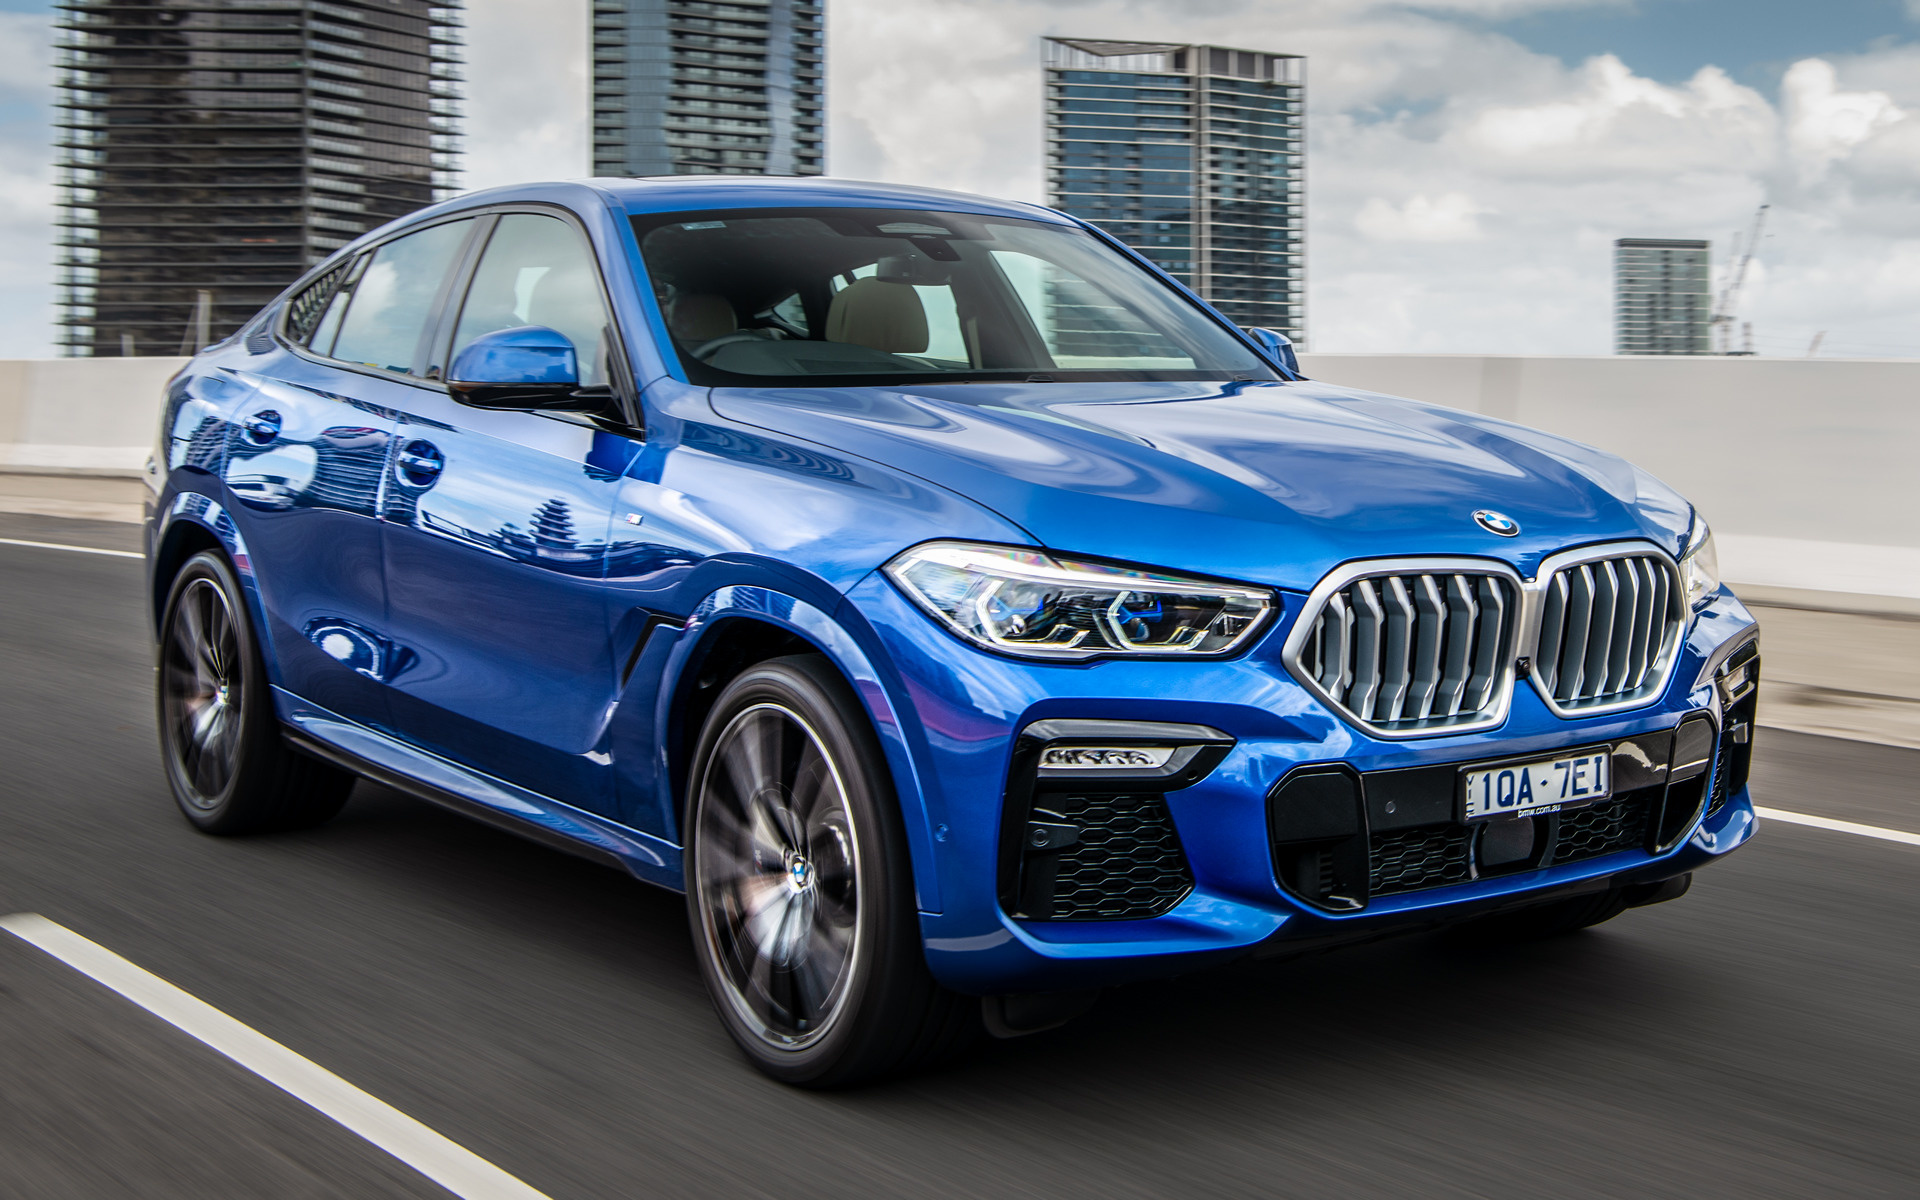 2020 Bmw X6 M Sport Au Wallpapers And Hd Images Car Pixel